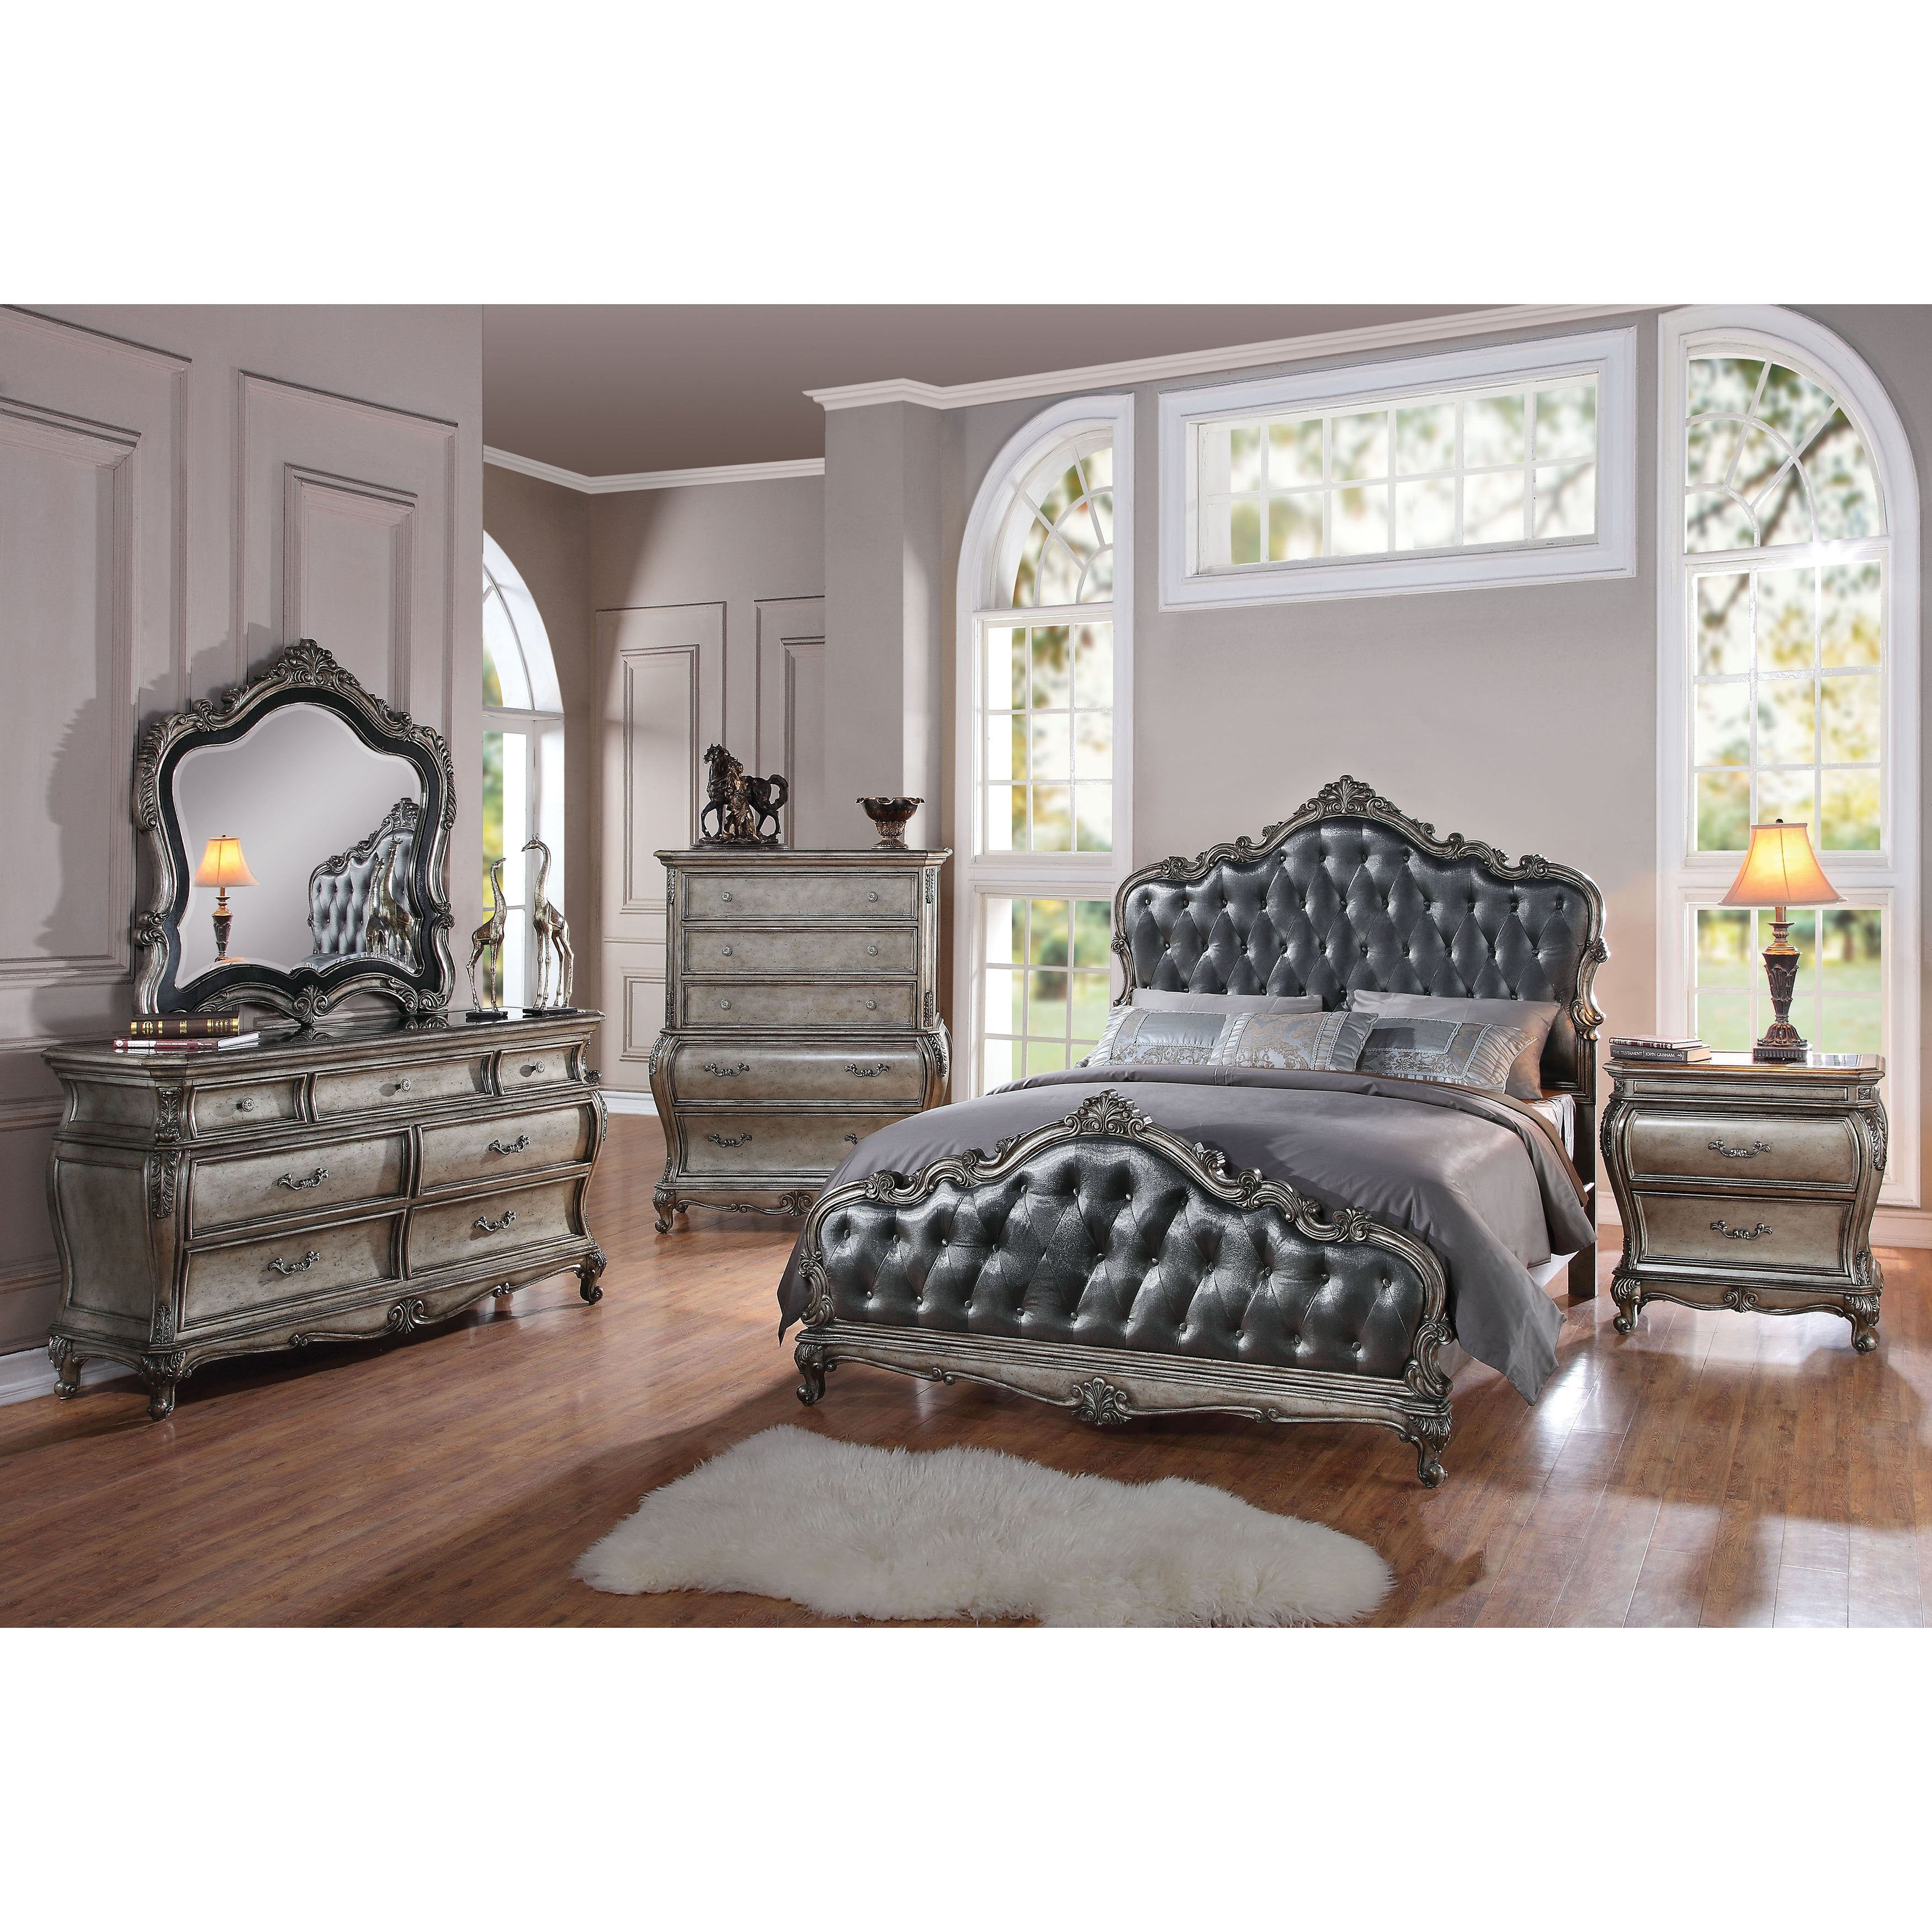 Acme Furniture Chantelle 4 Piece Bedroom Set, Antique Platinum With Silver  Gray Silk Like Fabric   Free Shipping Today   Overstock   20755888